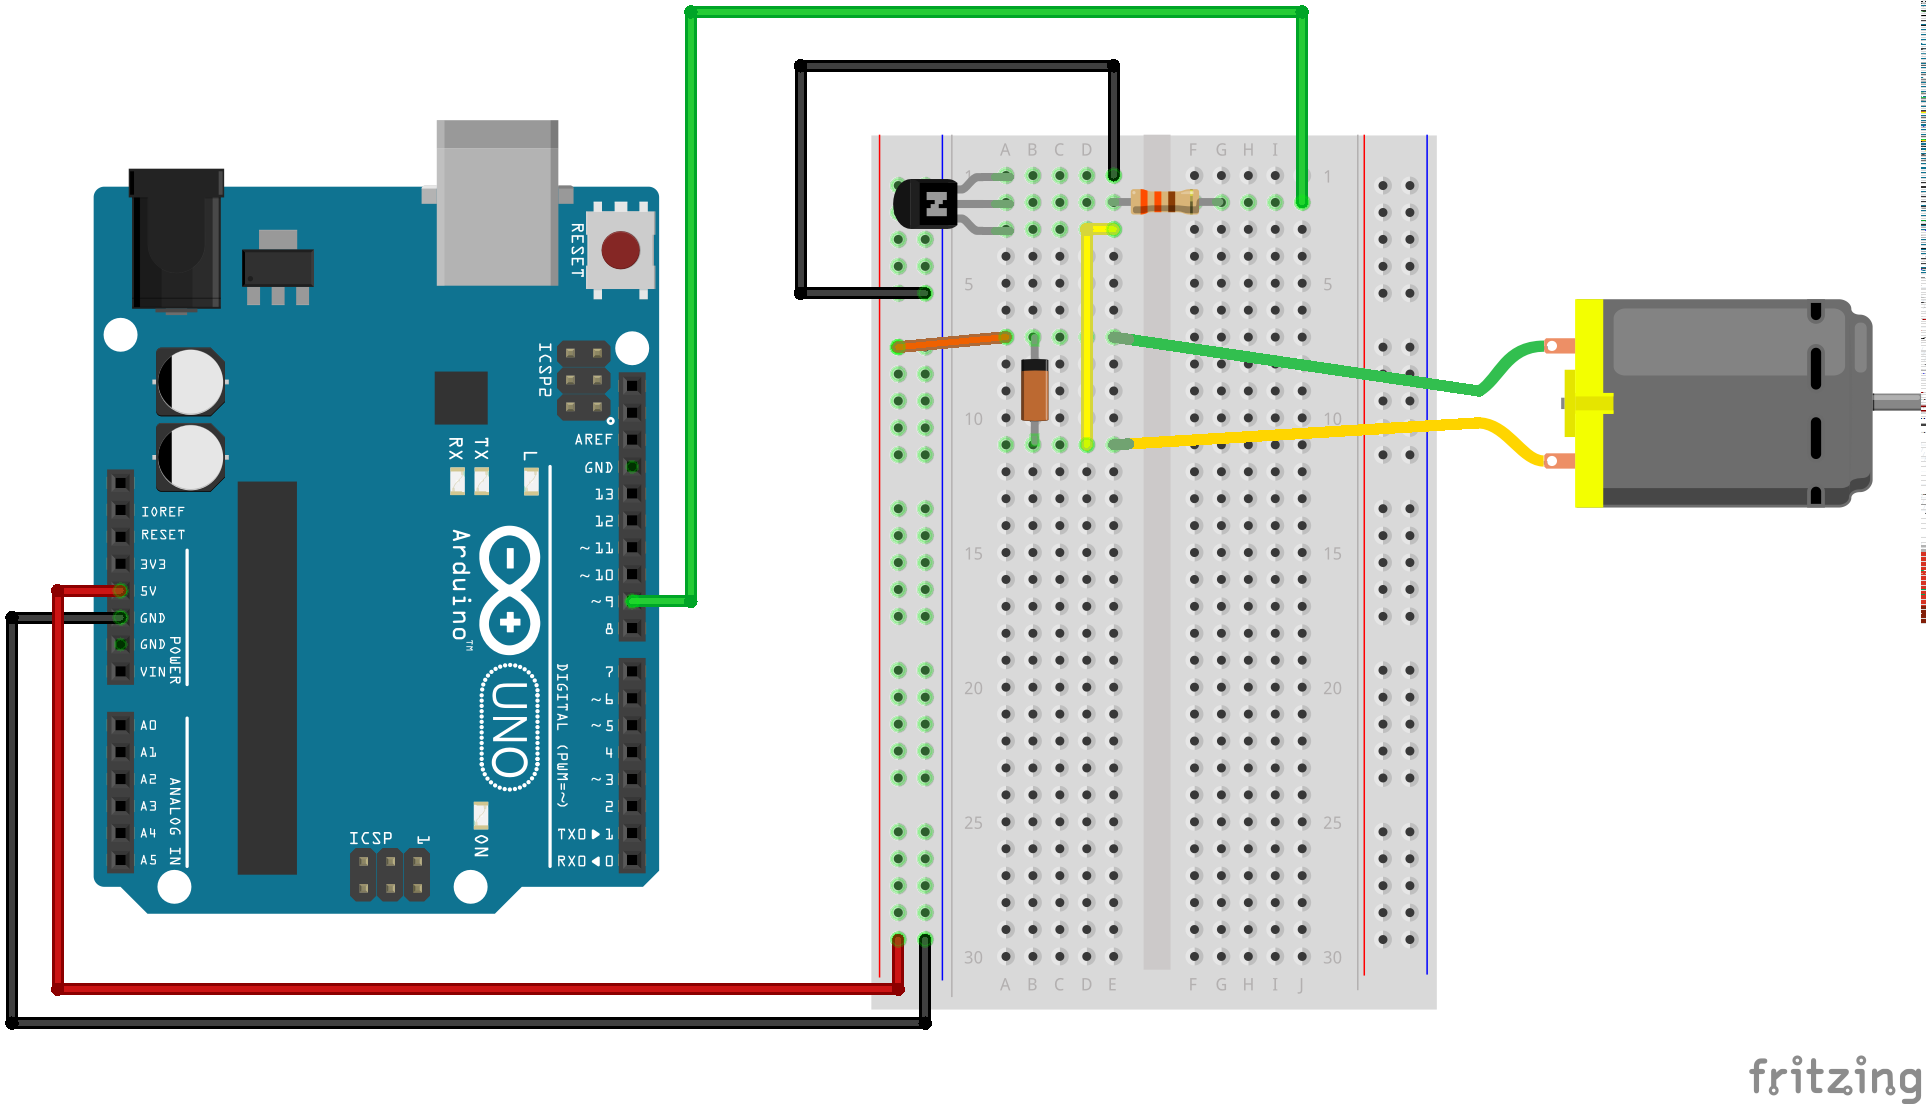 Gear Motor Schematic Arduino - Circuit Connection Diagram •